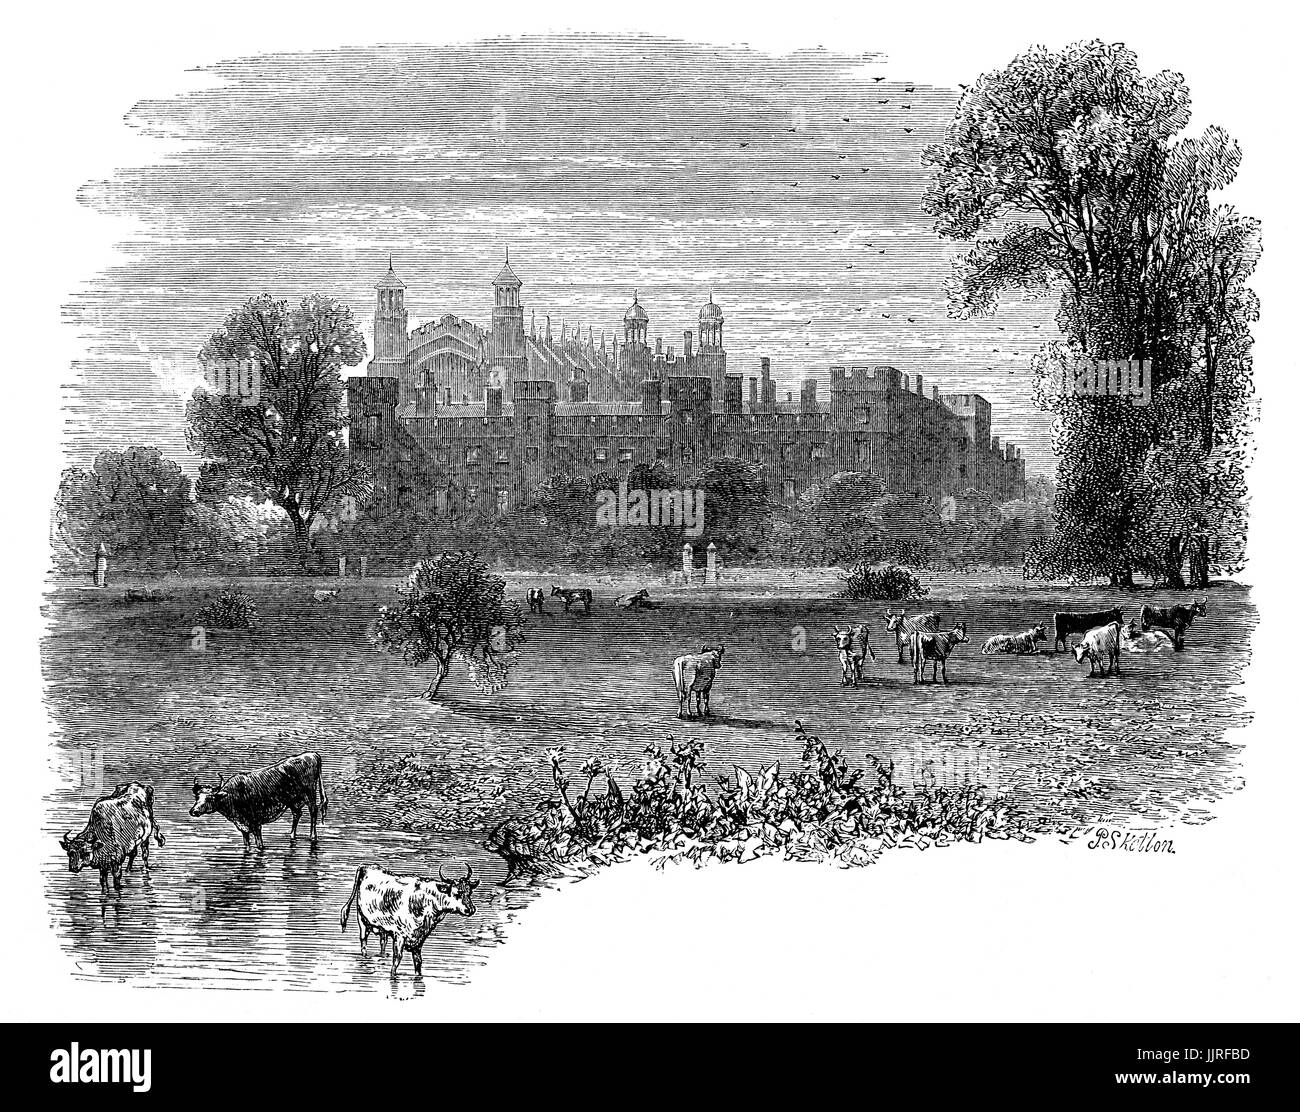 1870: A view from the River Thames of Eton College, an English independent boarding school for boys founded in 1440 - Stock Image